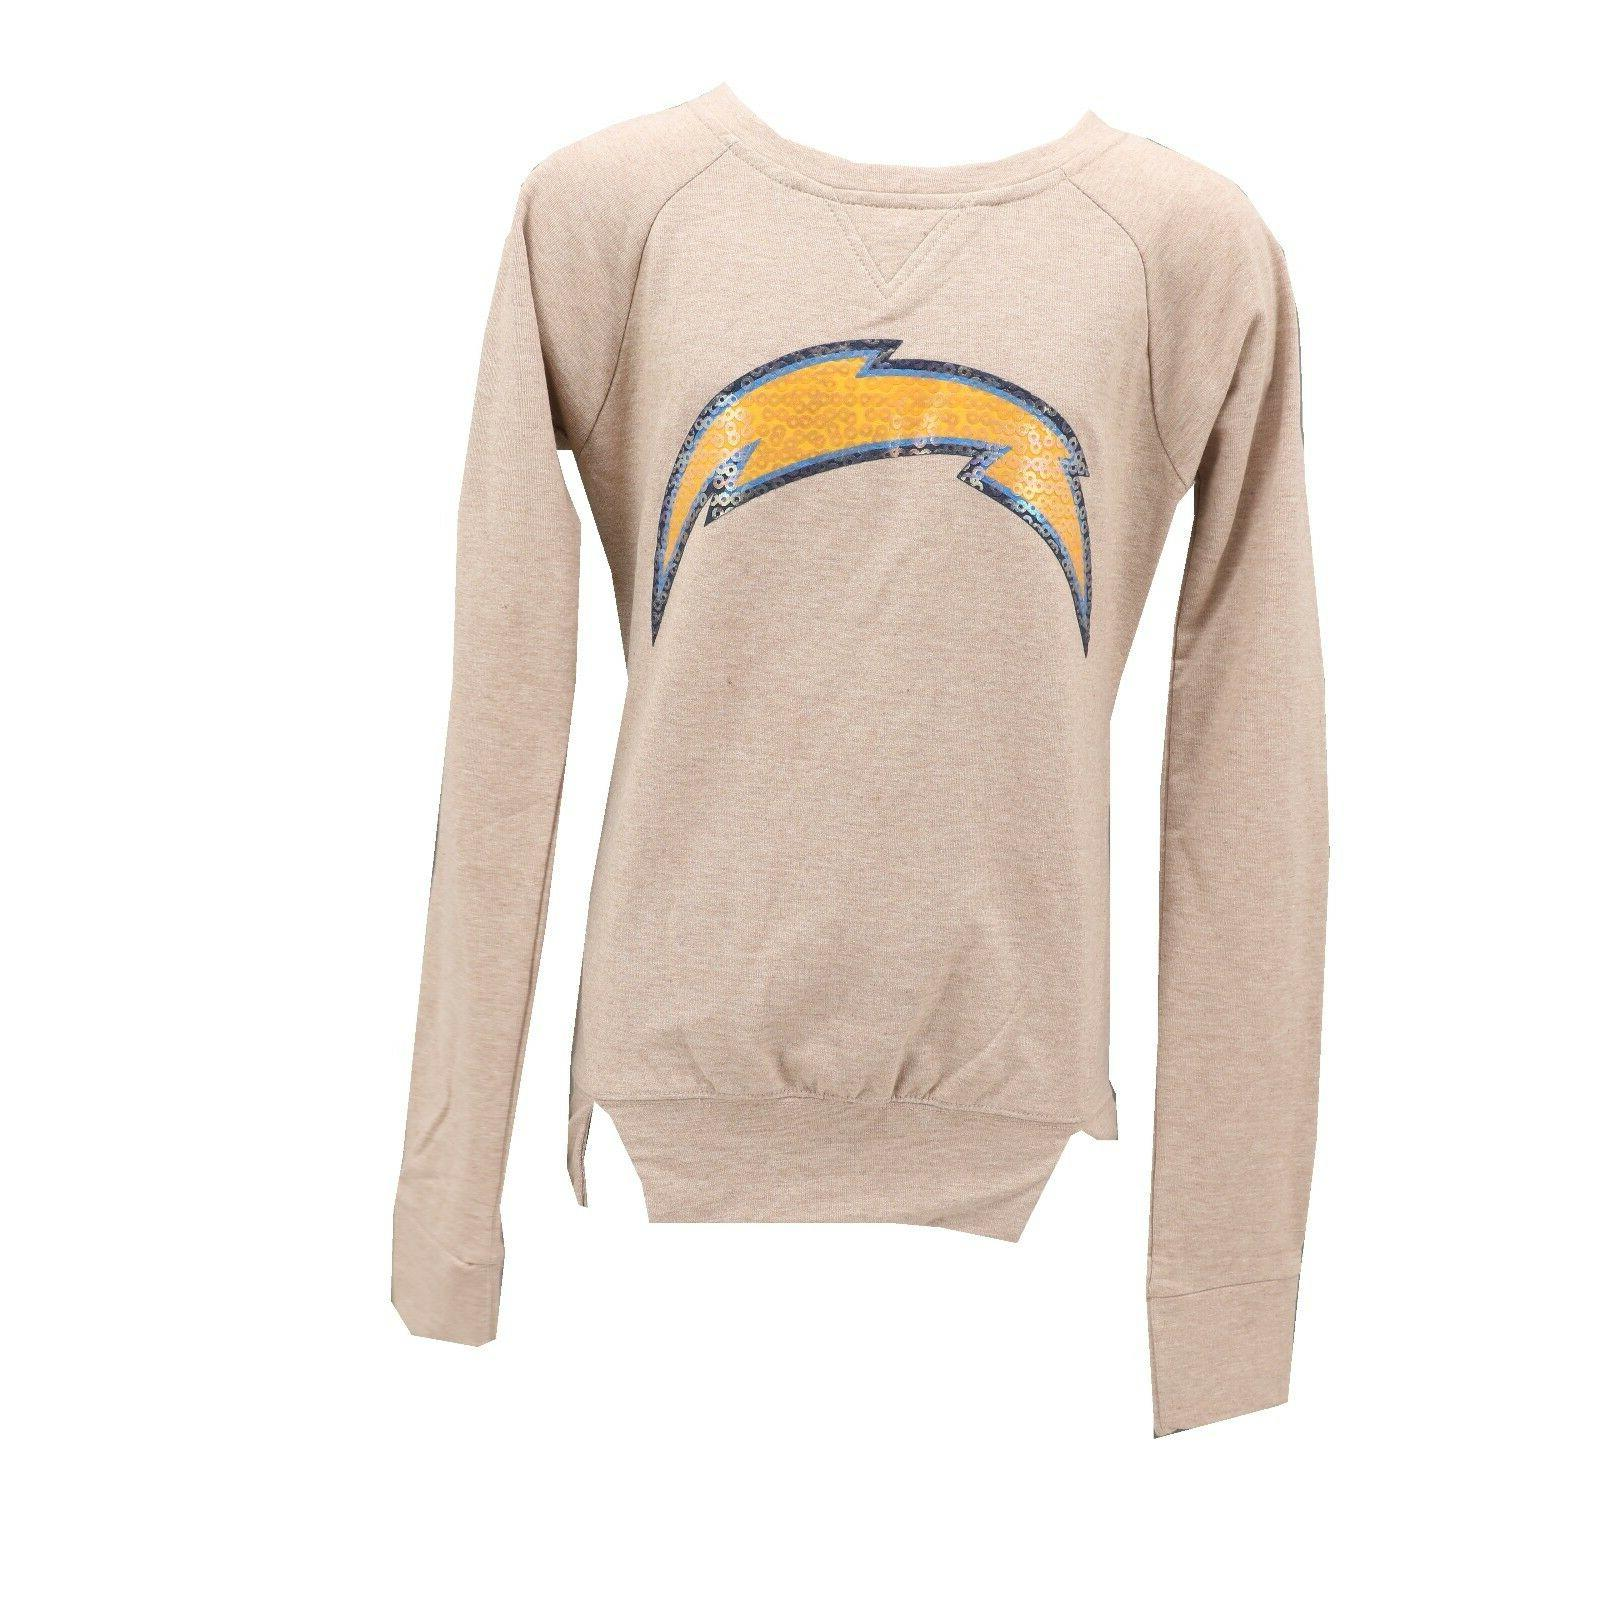 los angeles chargers official nfl teen apparel